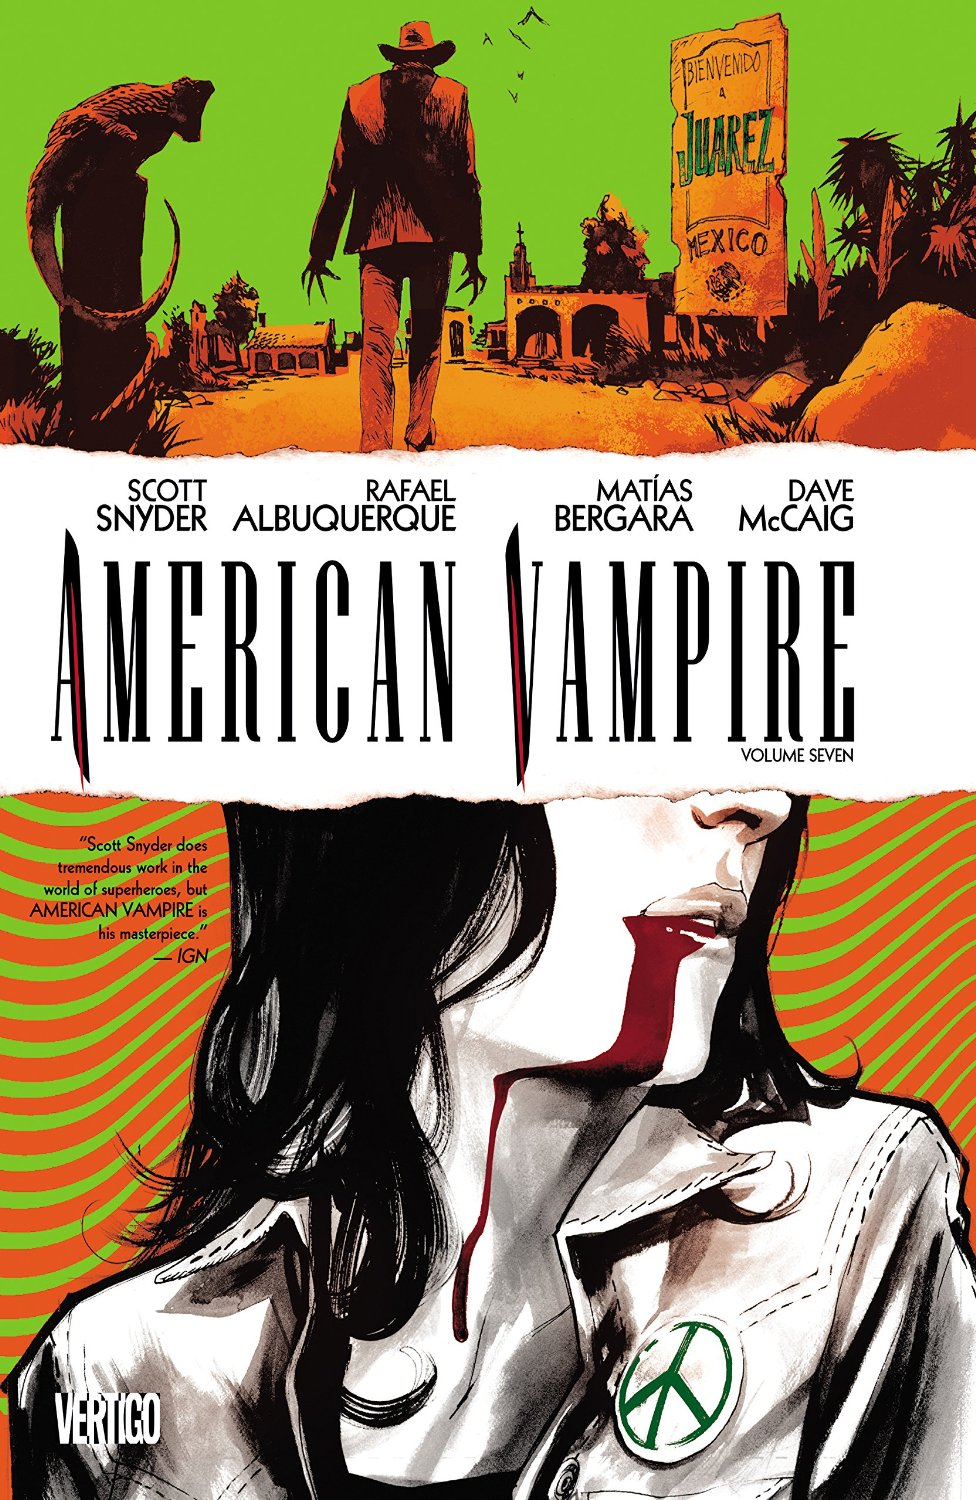 American Vampire Vol. 7 (Collected)